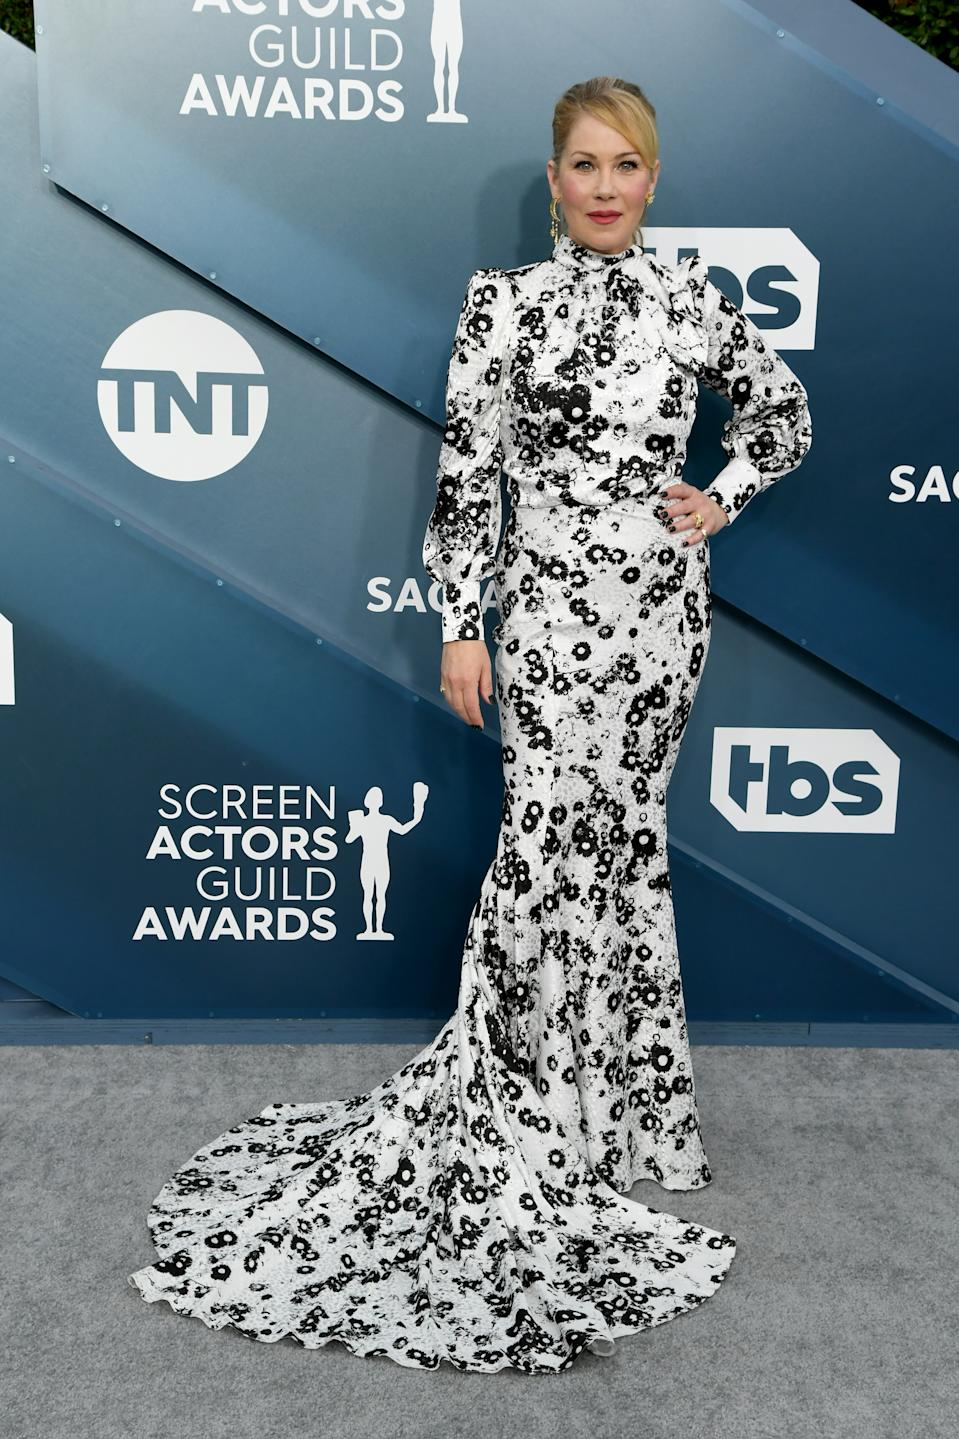 """The """"Dead To Me"""" star and SAG Awards nominee wowed in a monochrome look by Monique Lhuillier."""